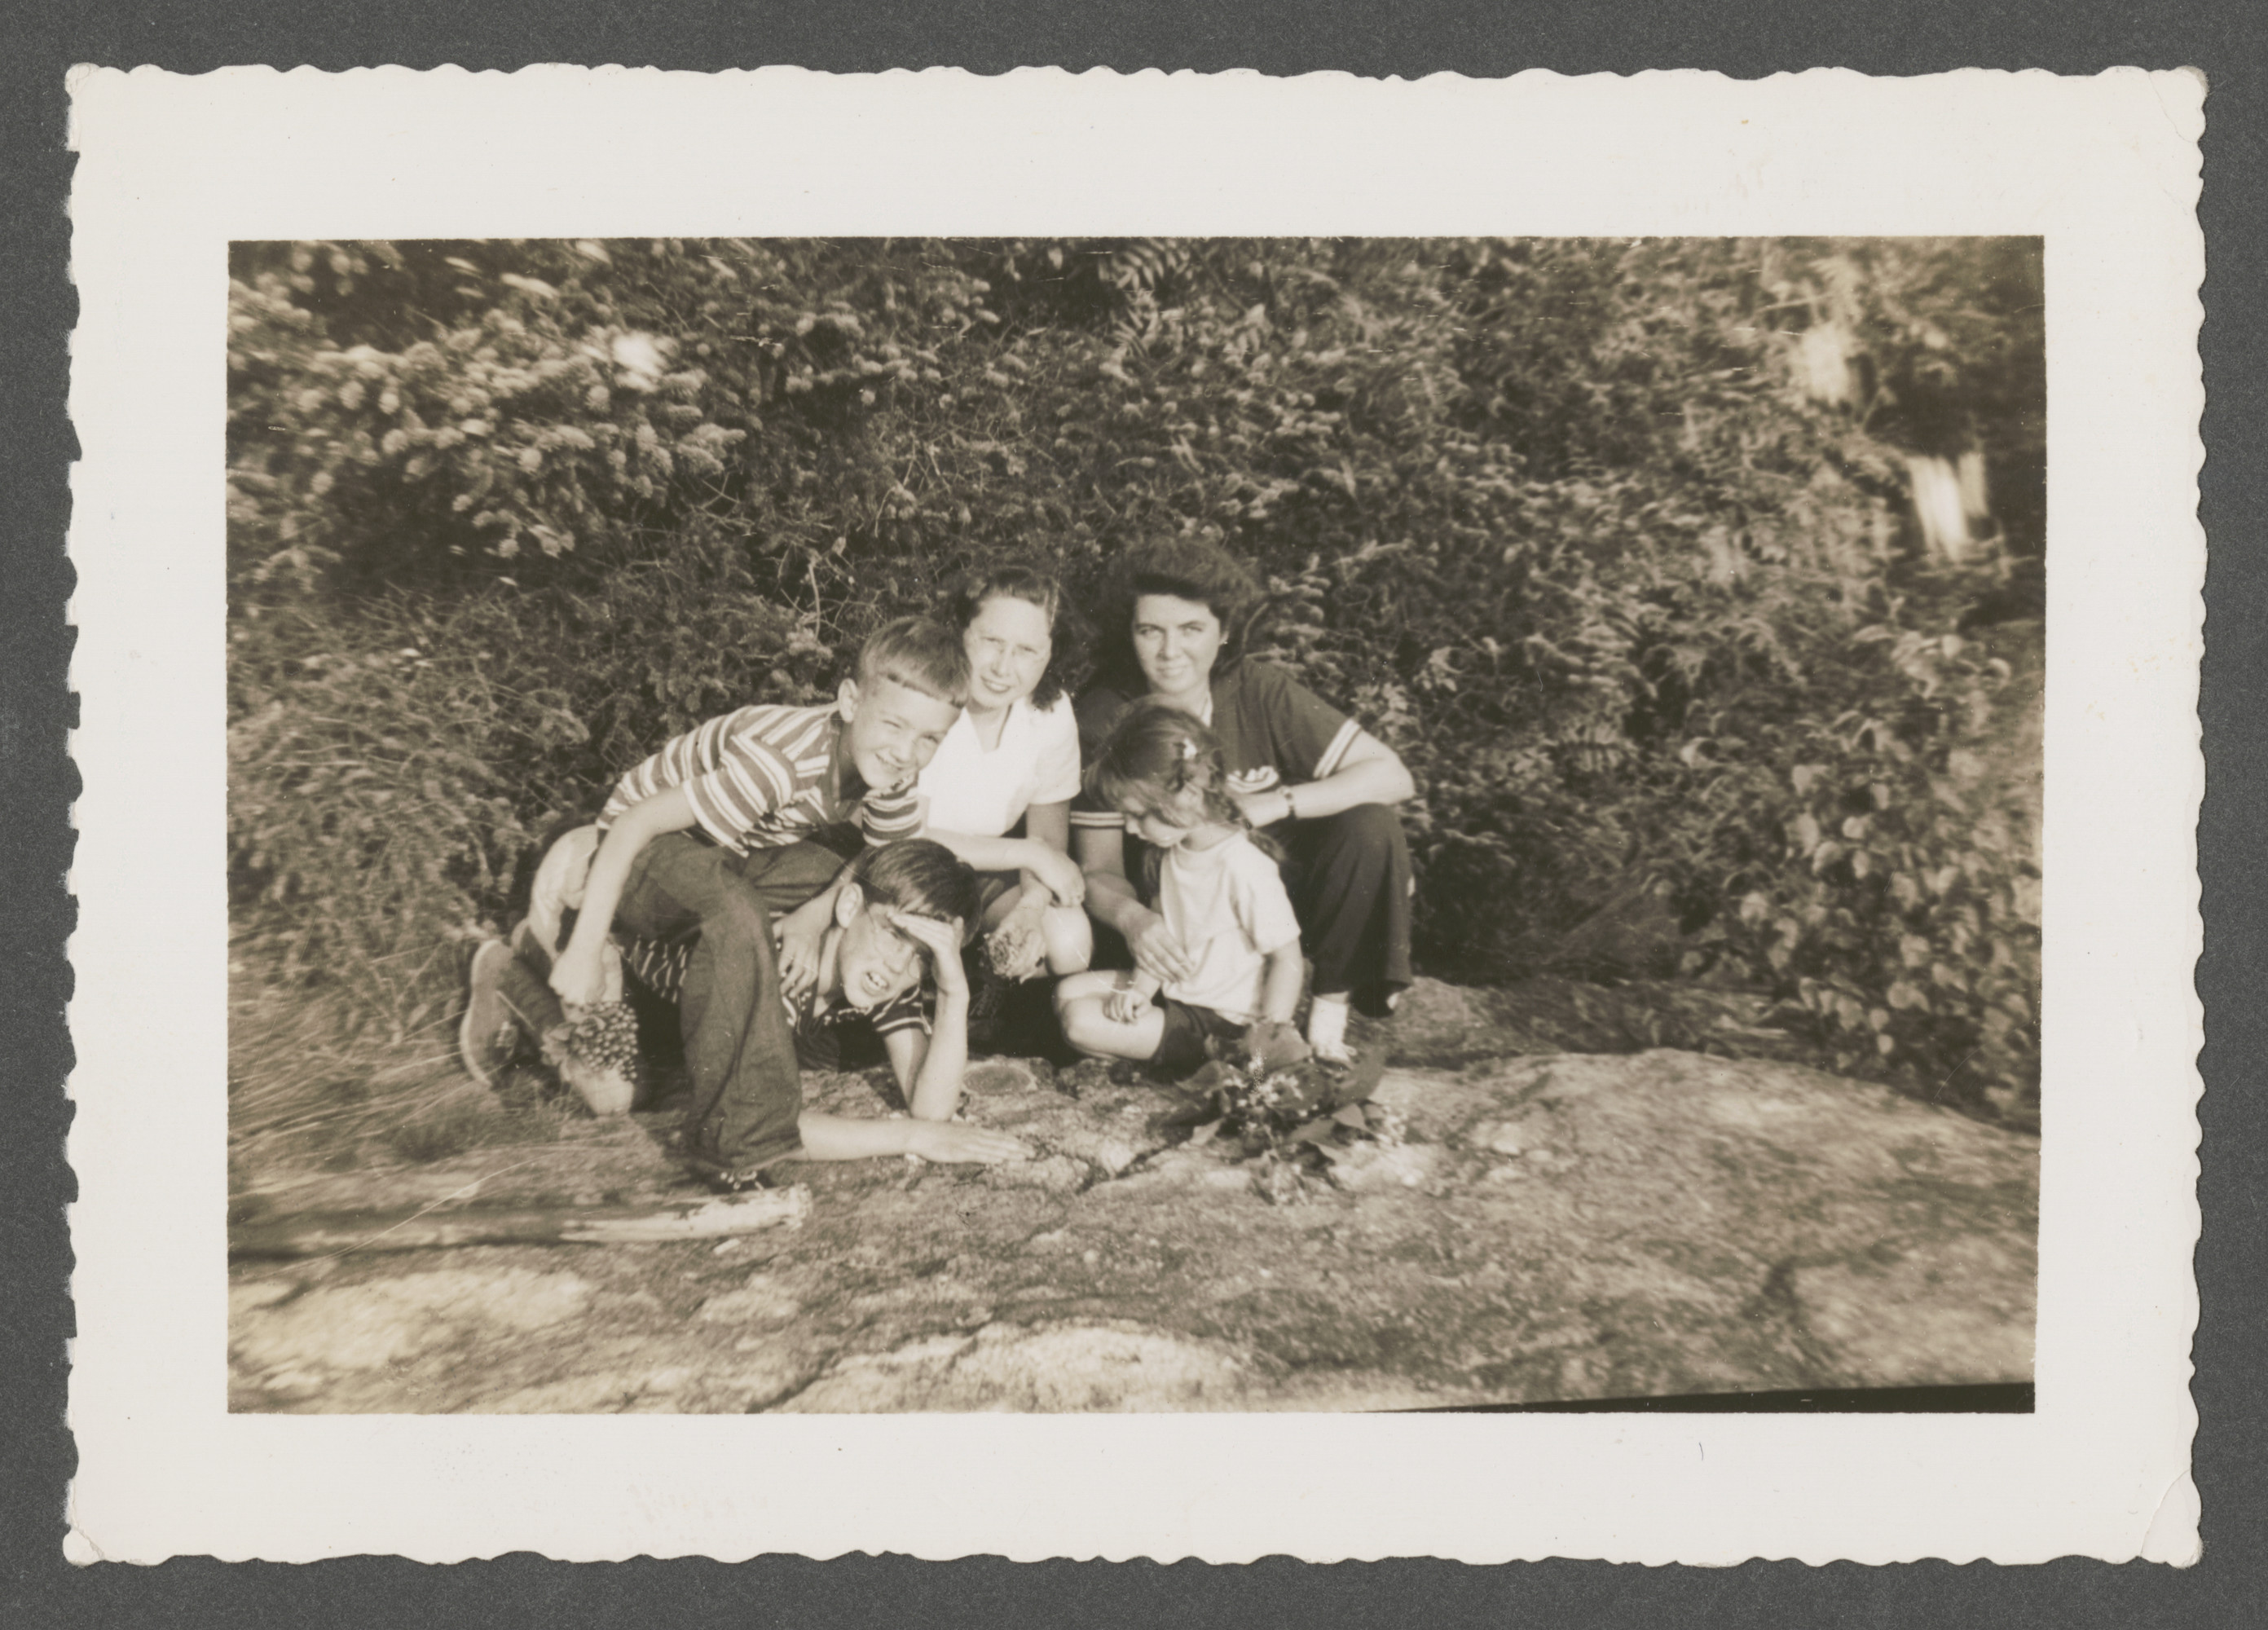 "Goldschmied and Sharp family members relax on the peak of Mount Sunapee in New Hampshire.  Pictured is Renee Goldschmied (back, center), with Martha Sharp (back, right) and [probably] her children Hastings (front, on hands and knees) and Martha Content (front, right).    The inscription on the back of the photograph reads, ""Renee on peak of Mount Sunopee, 1214 ft. high, summer 1942 (Sharps)."""